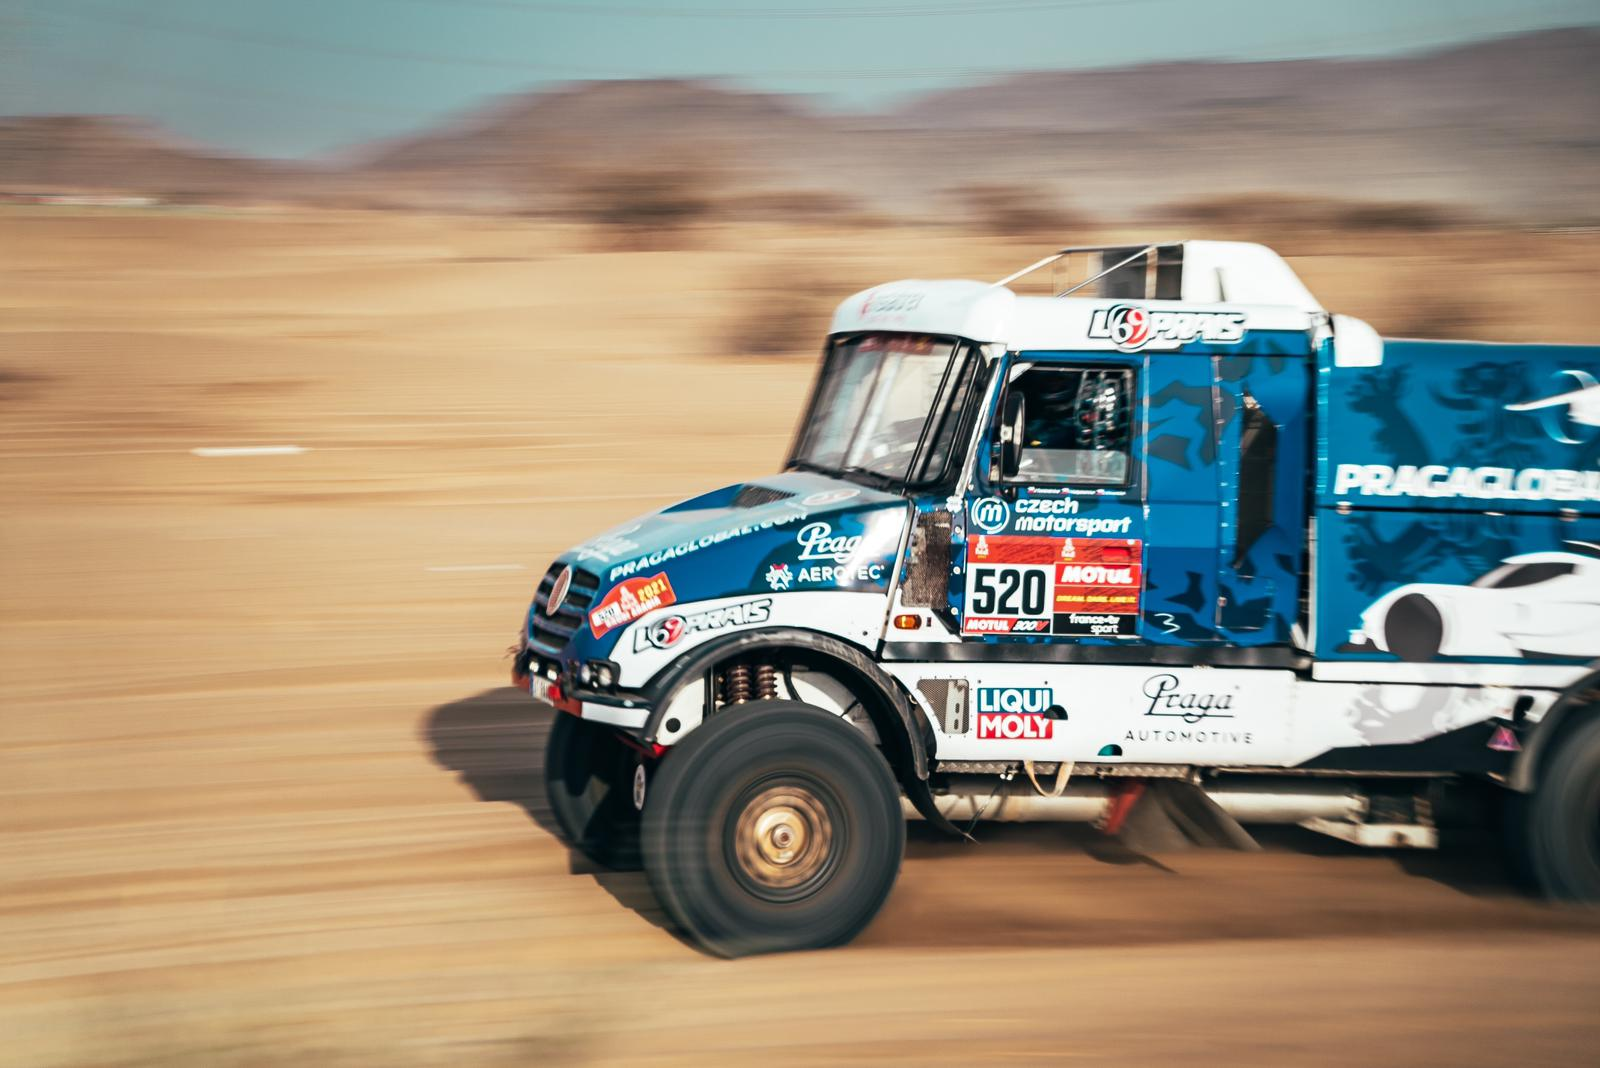 Dakar 2021: Successful shakedown for both trucks and three drivers of the Instaforex Loprais Praga Team